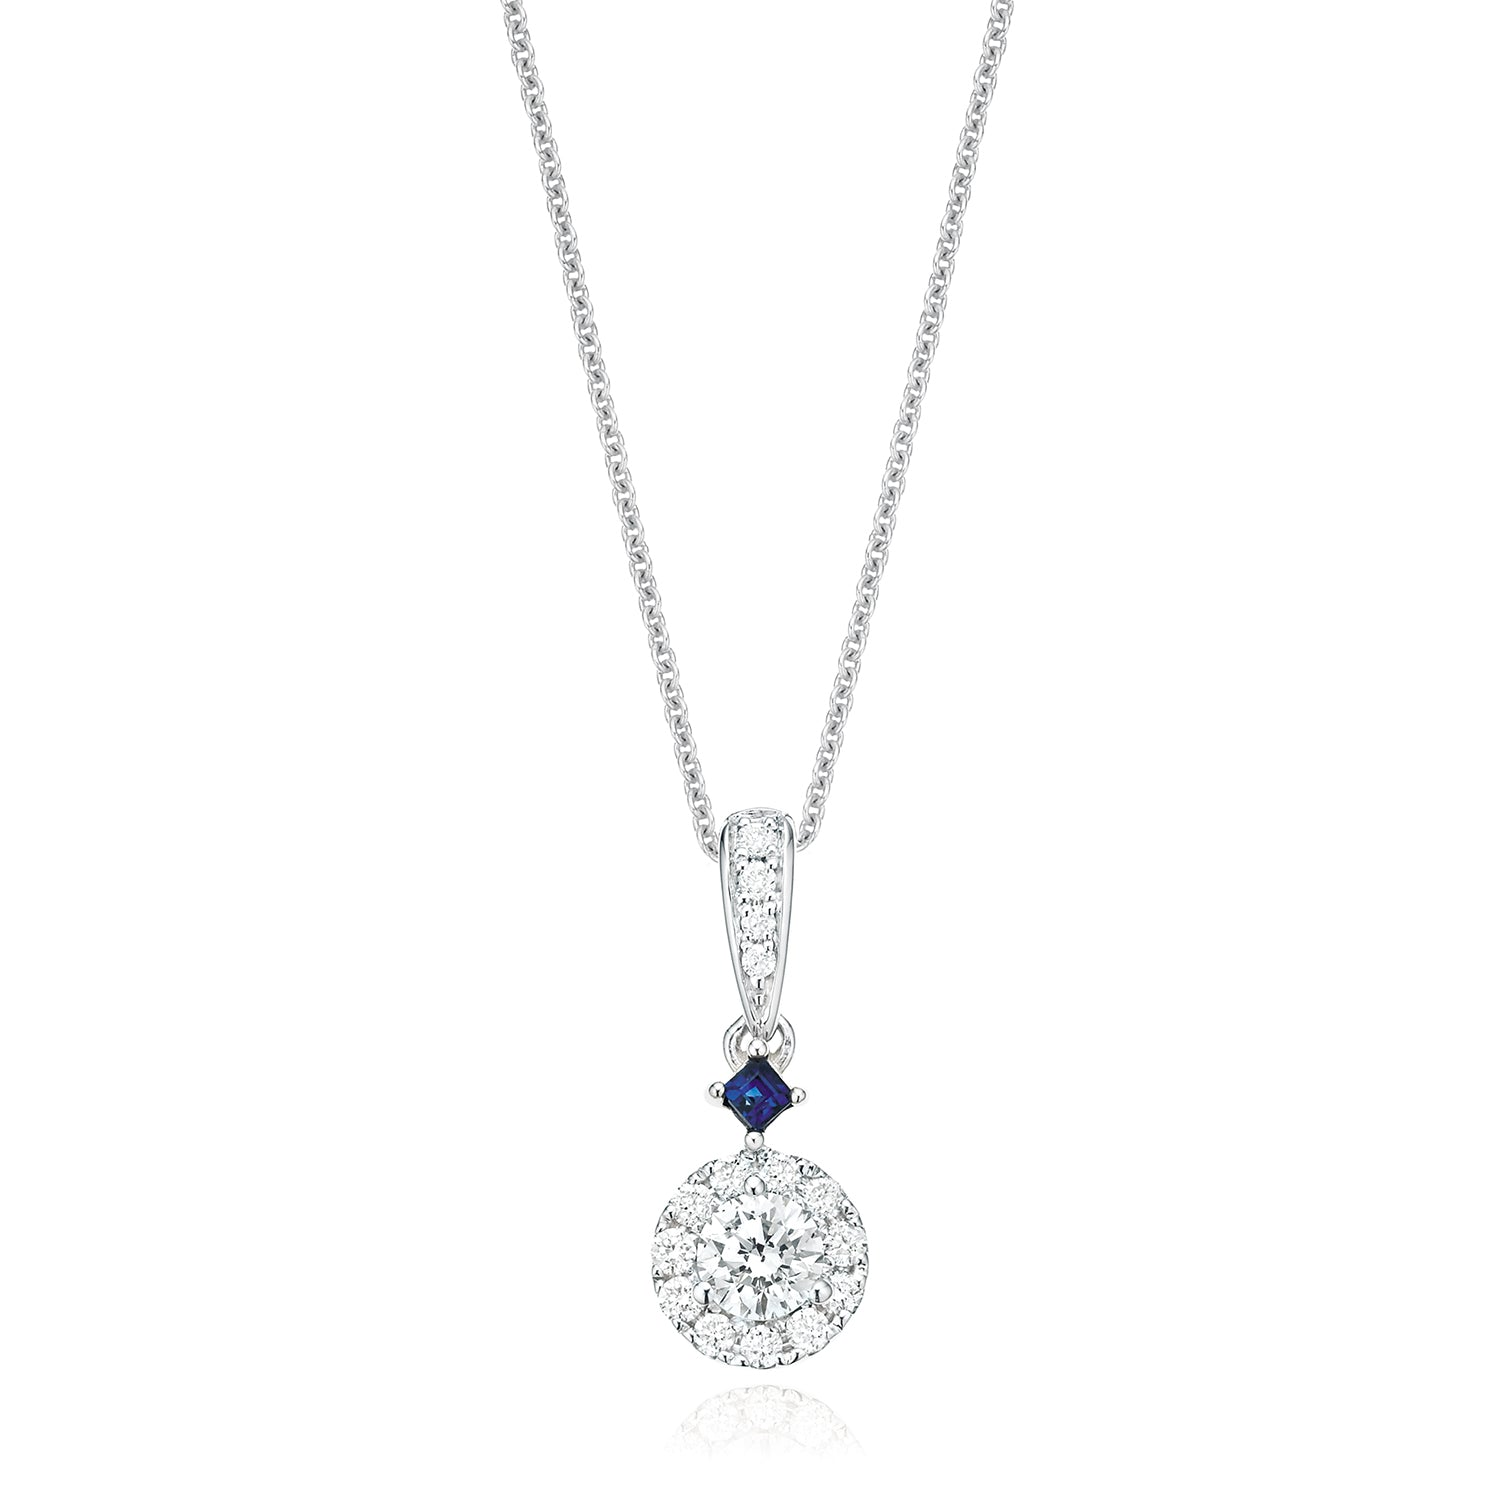 Vera Wang Love 18ct White Gold Round Brilliant Cut with 0.40 CARAT tw of Diamond Pendant